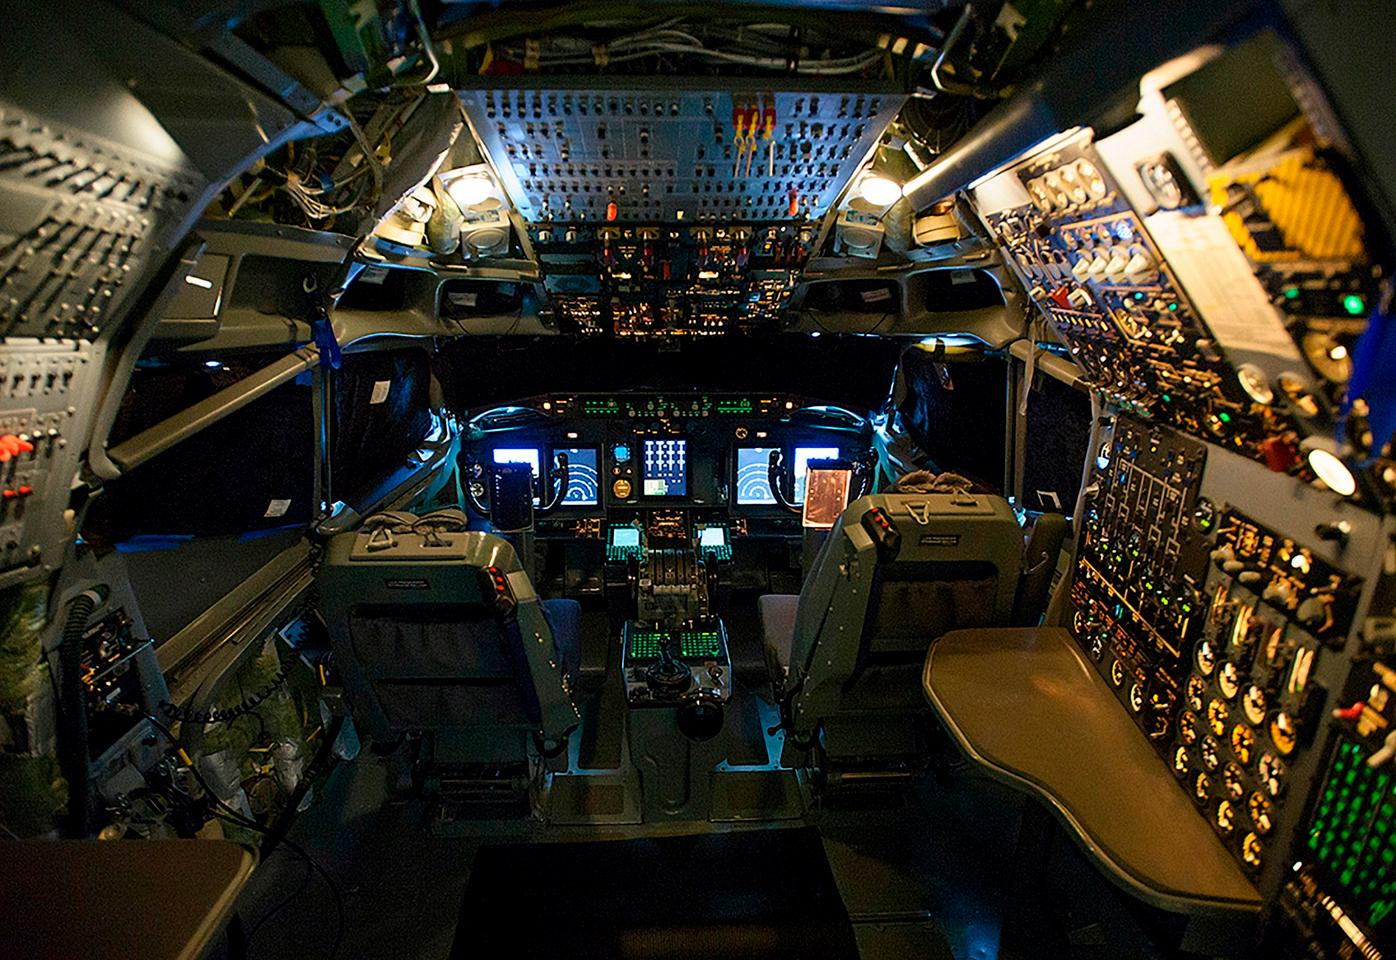 Boeing crews have updated the cockpit and avionics systems of NATO's AWACS aircraft, including five full-color displays that provide crew members with customizable engine, navigation and weather data